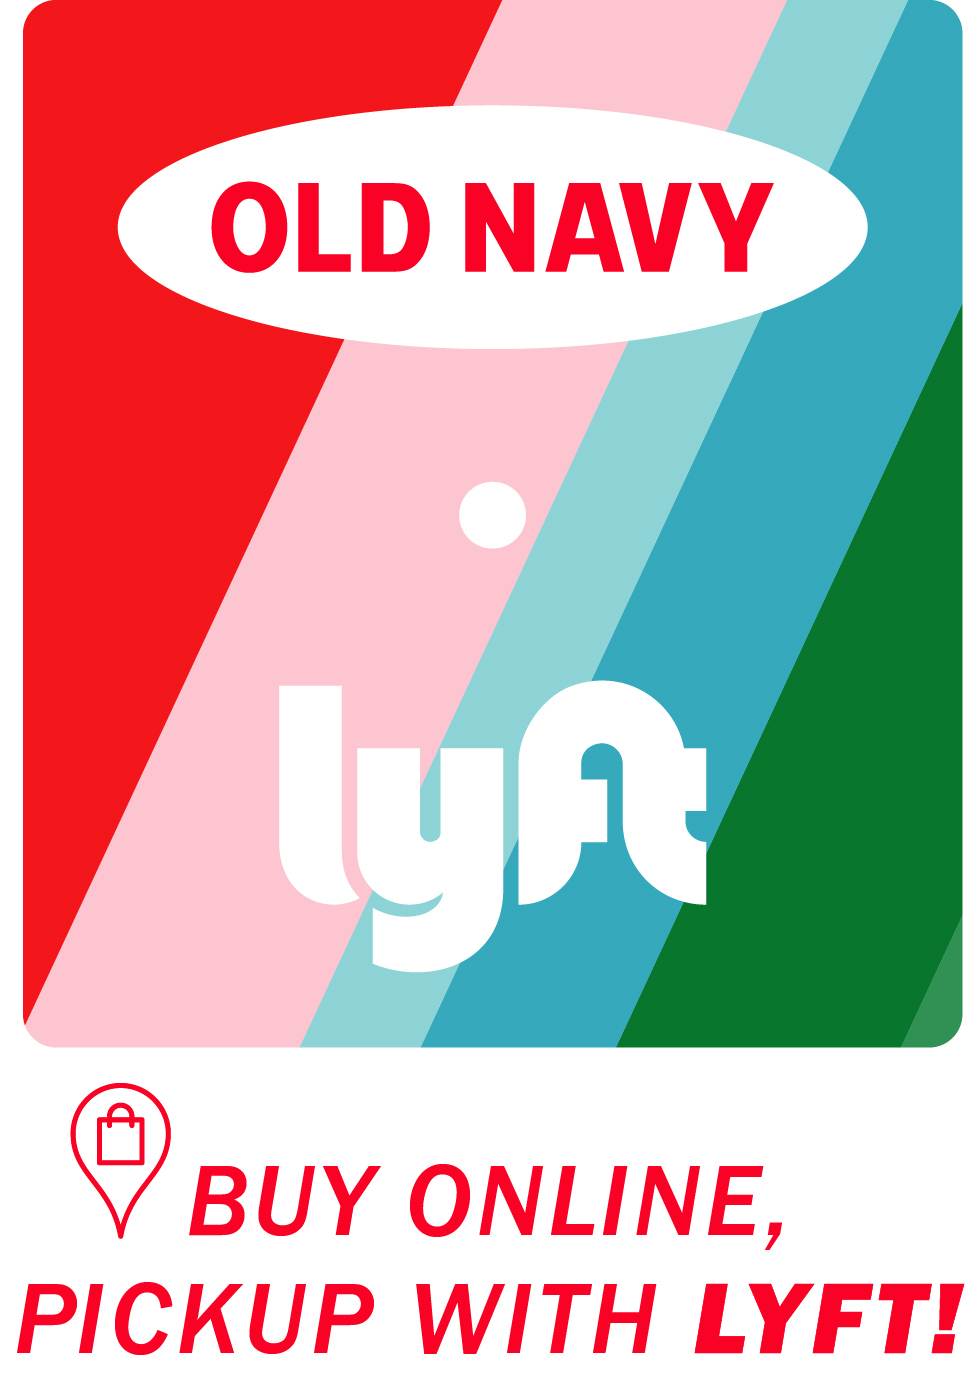 Old Navy and Lyft Team Up to Make Last-Minute Holiday Shopping ...